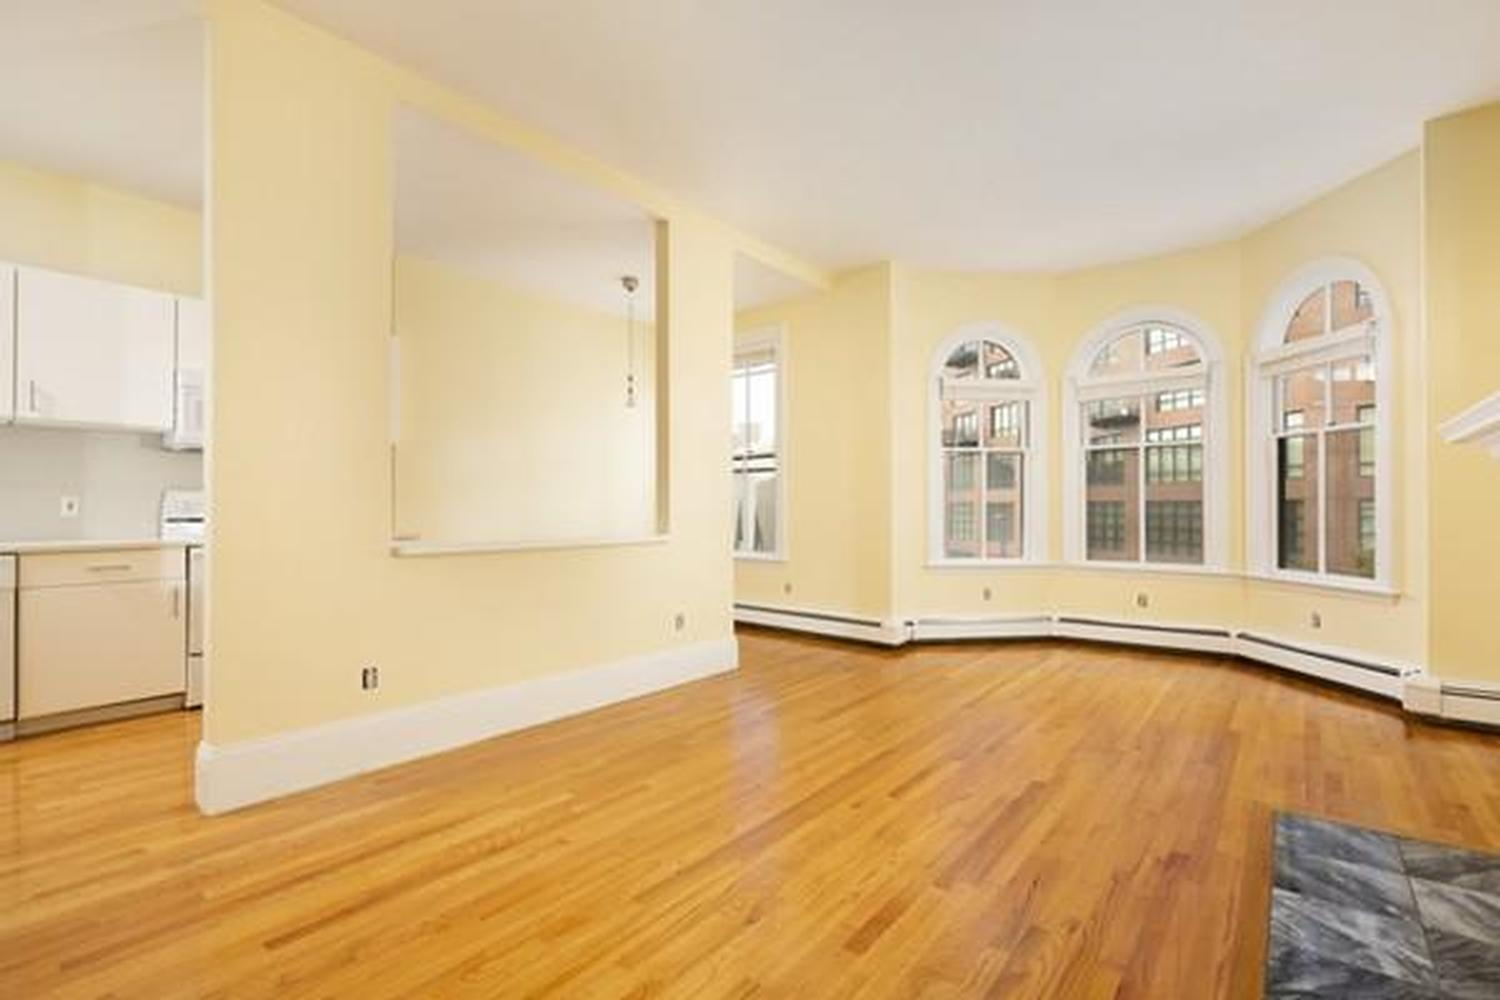 Photo of 524 Tremont Street Boston - South End, MA 02116